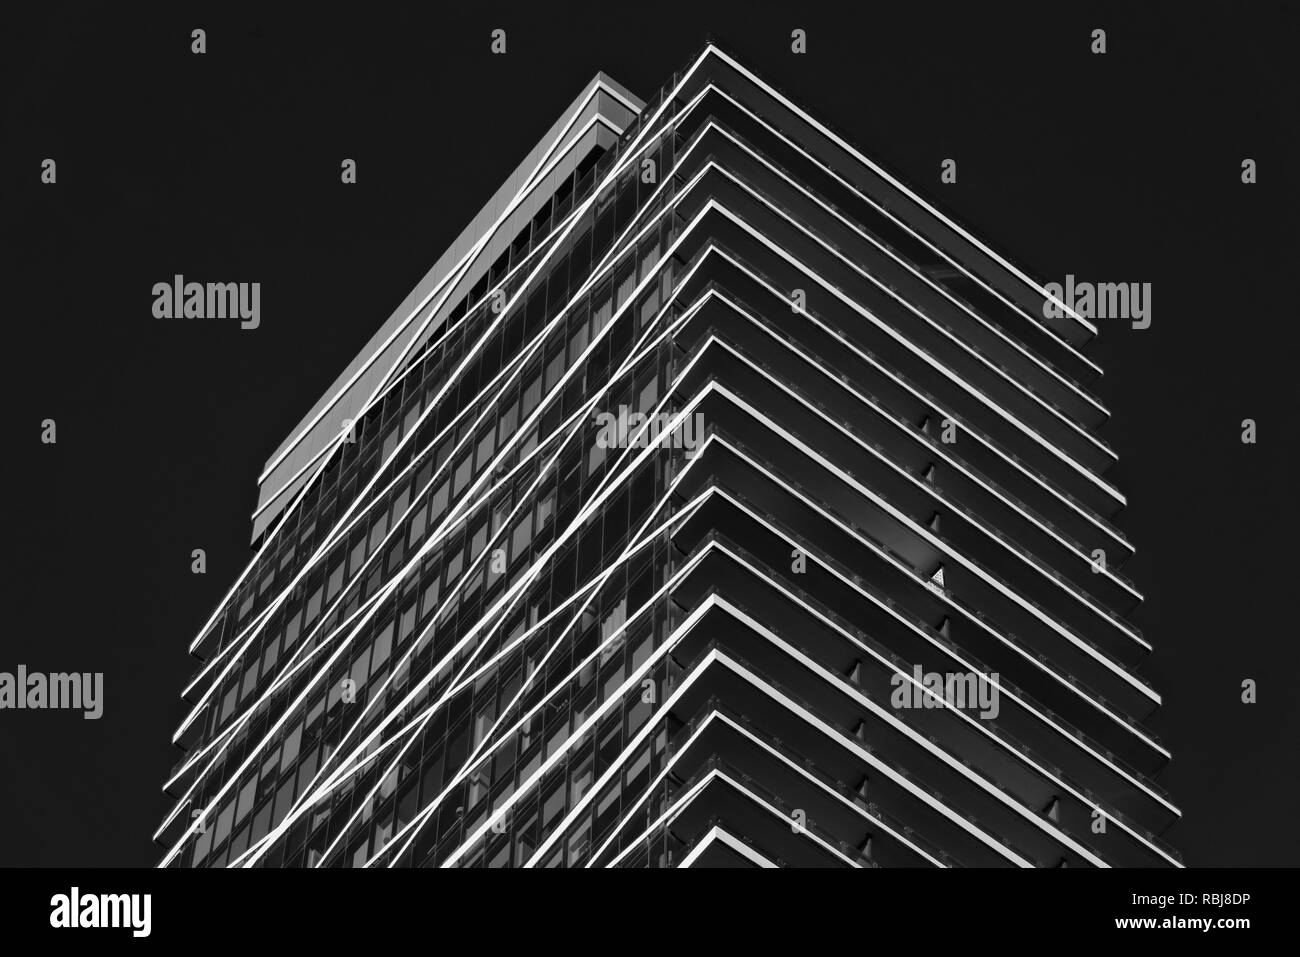 Detail of a modern apartment block in Toronto Canada - Stock Image